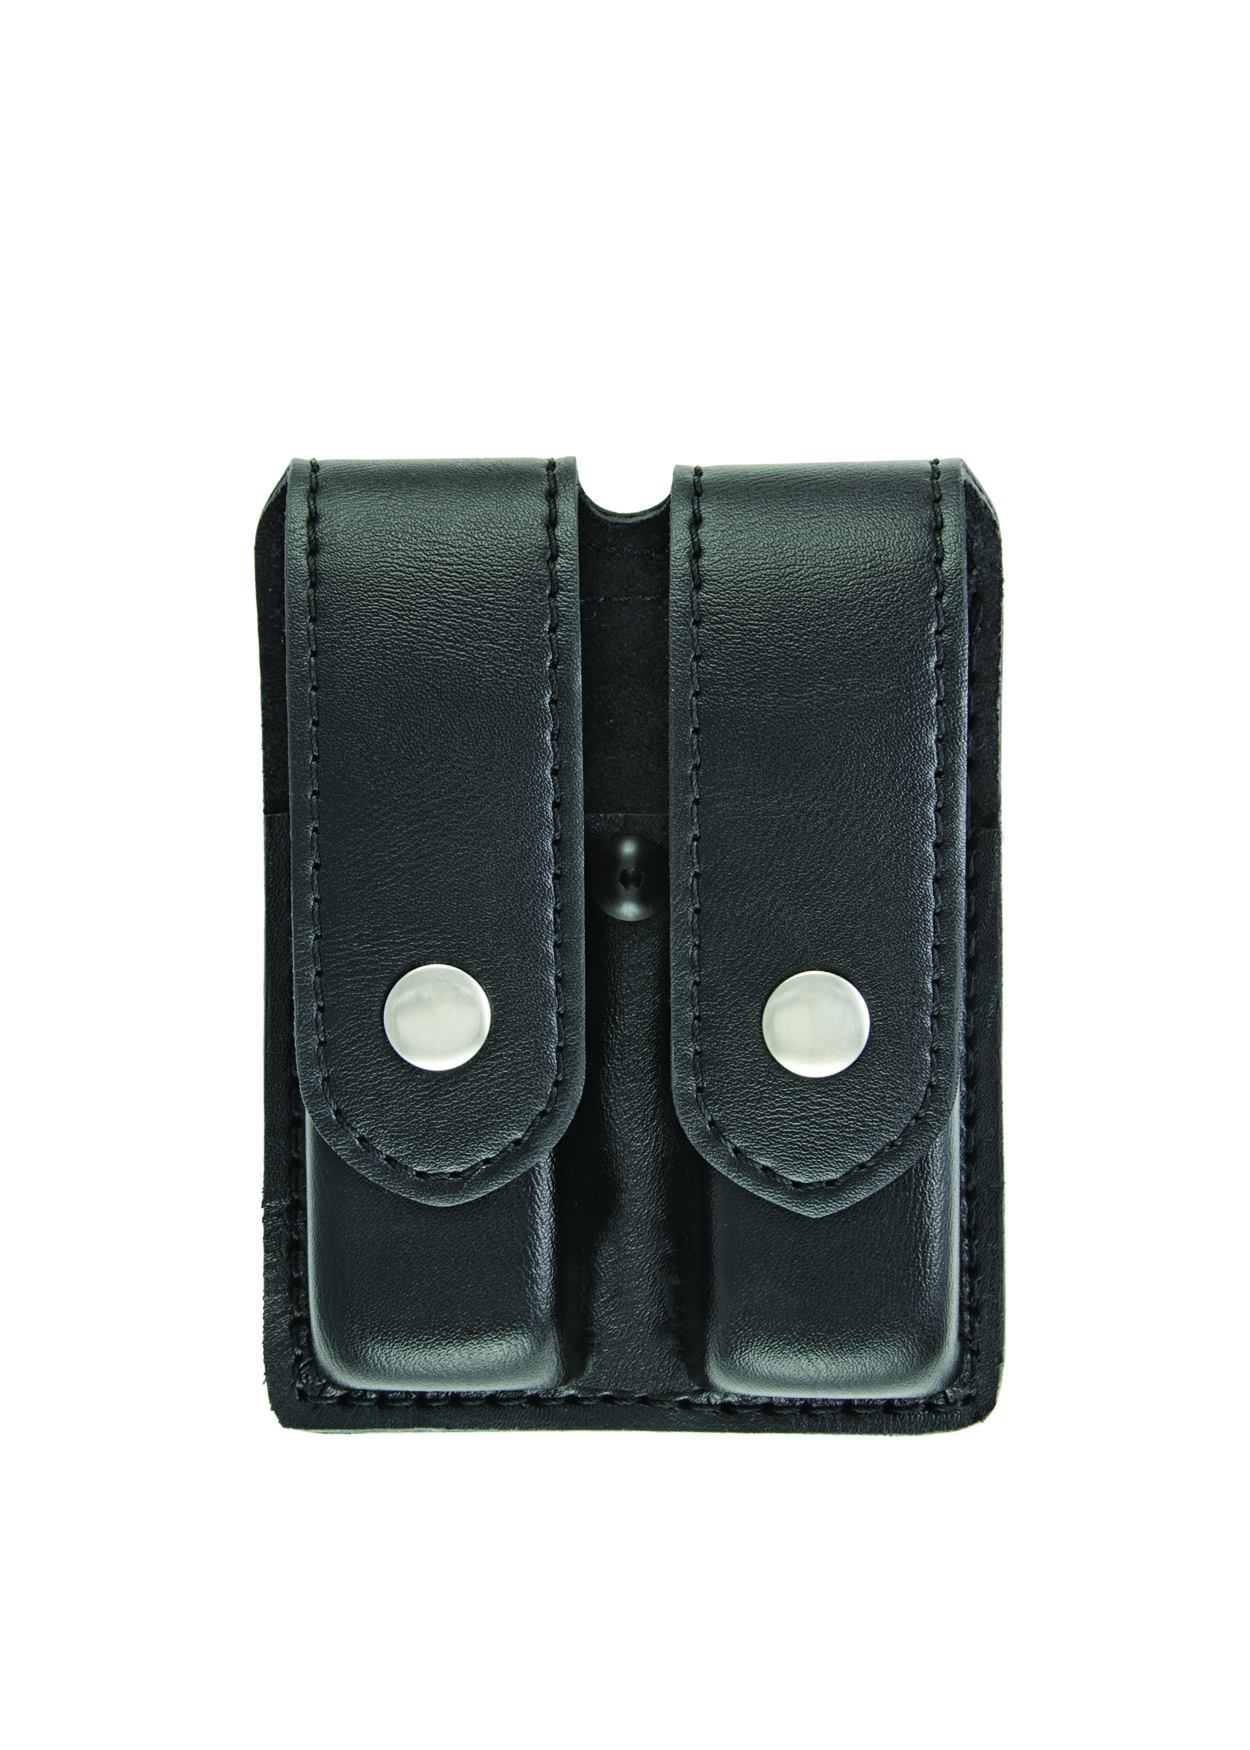 Double Magazine Case, Medium, AirTek, Smooth, Nickel Snaps-